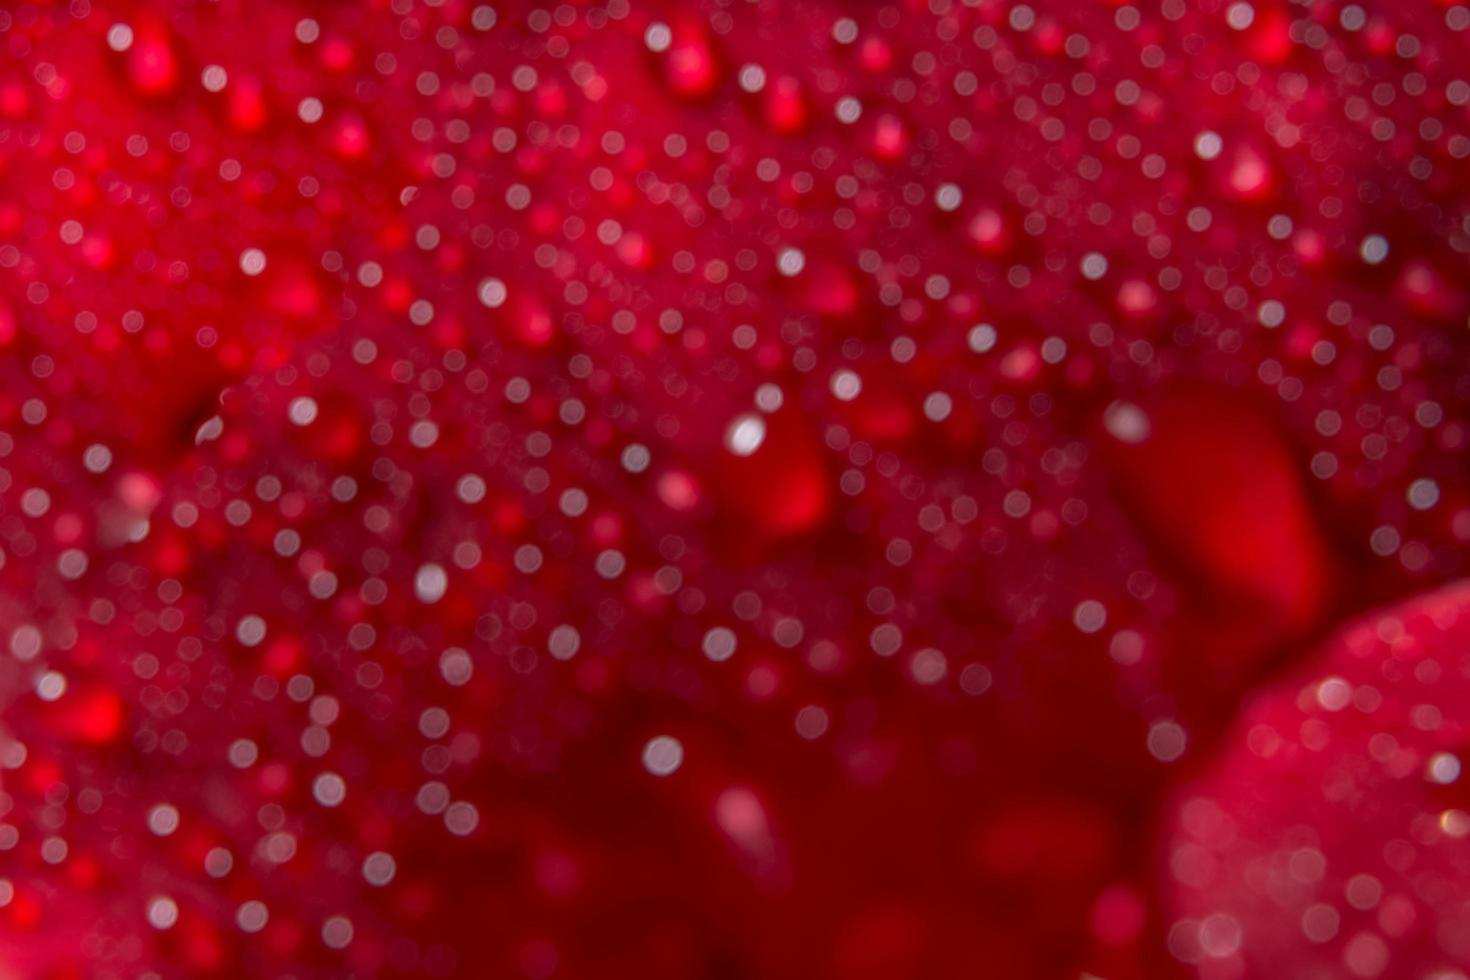 Water drops on a red rose, blurred background photo